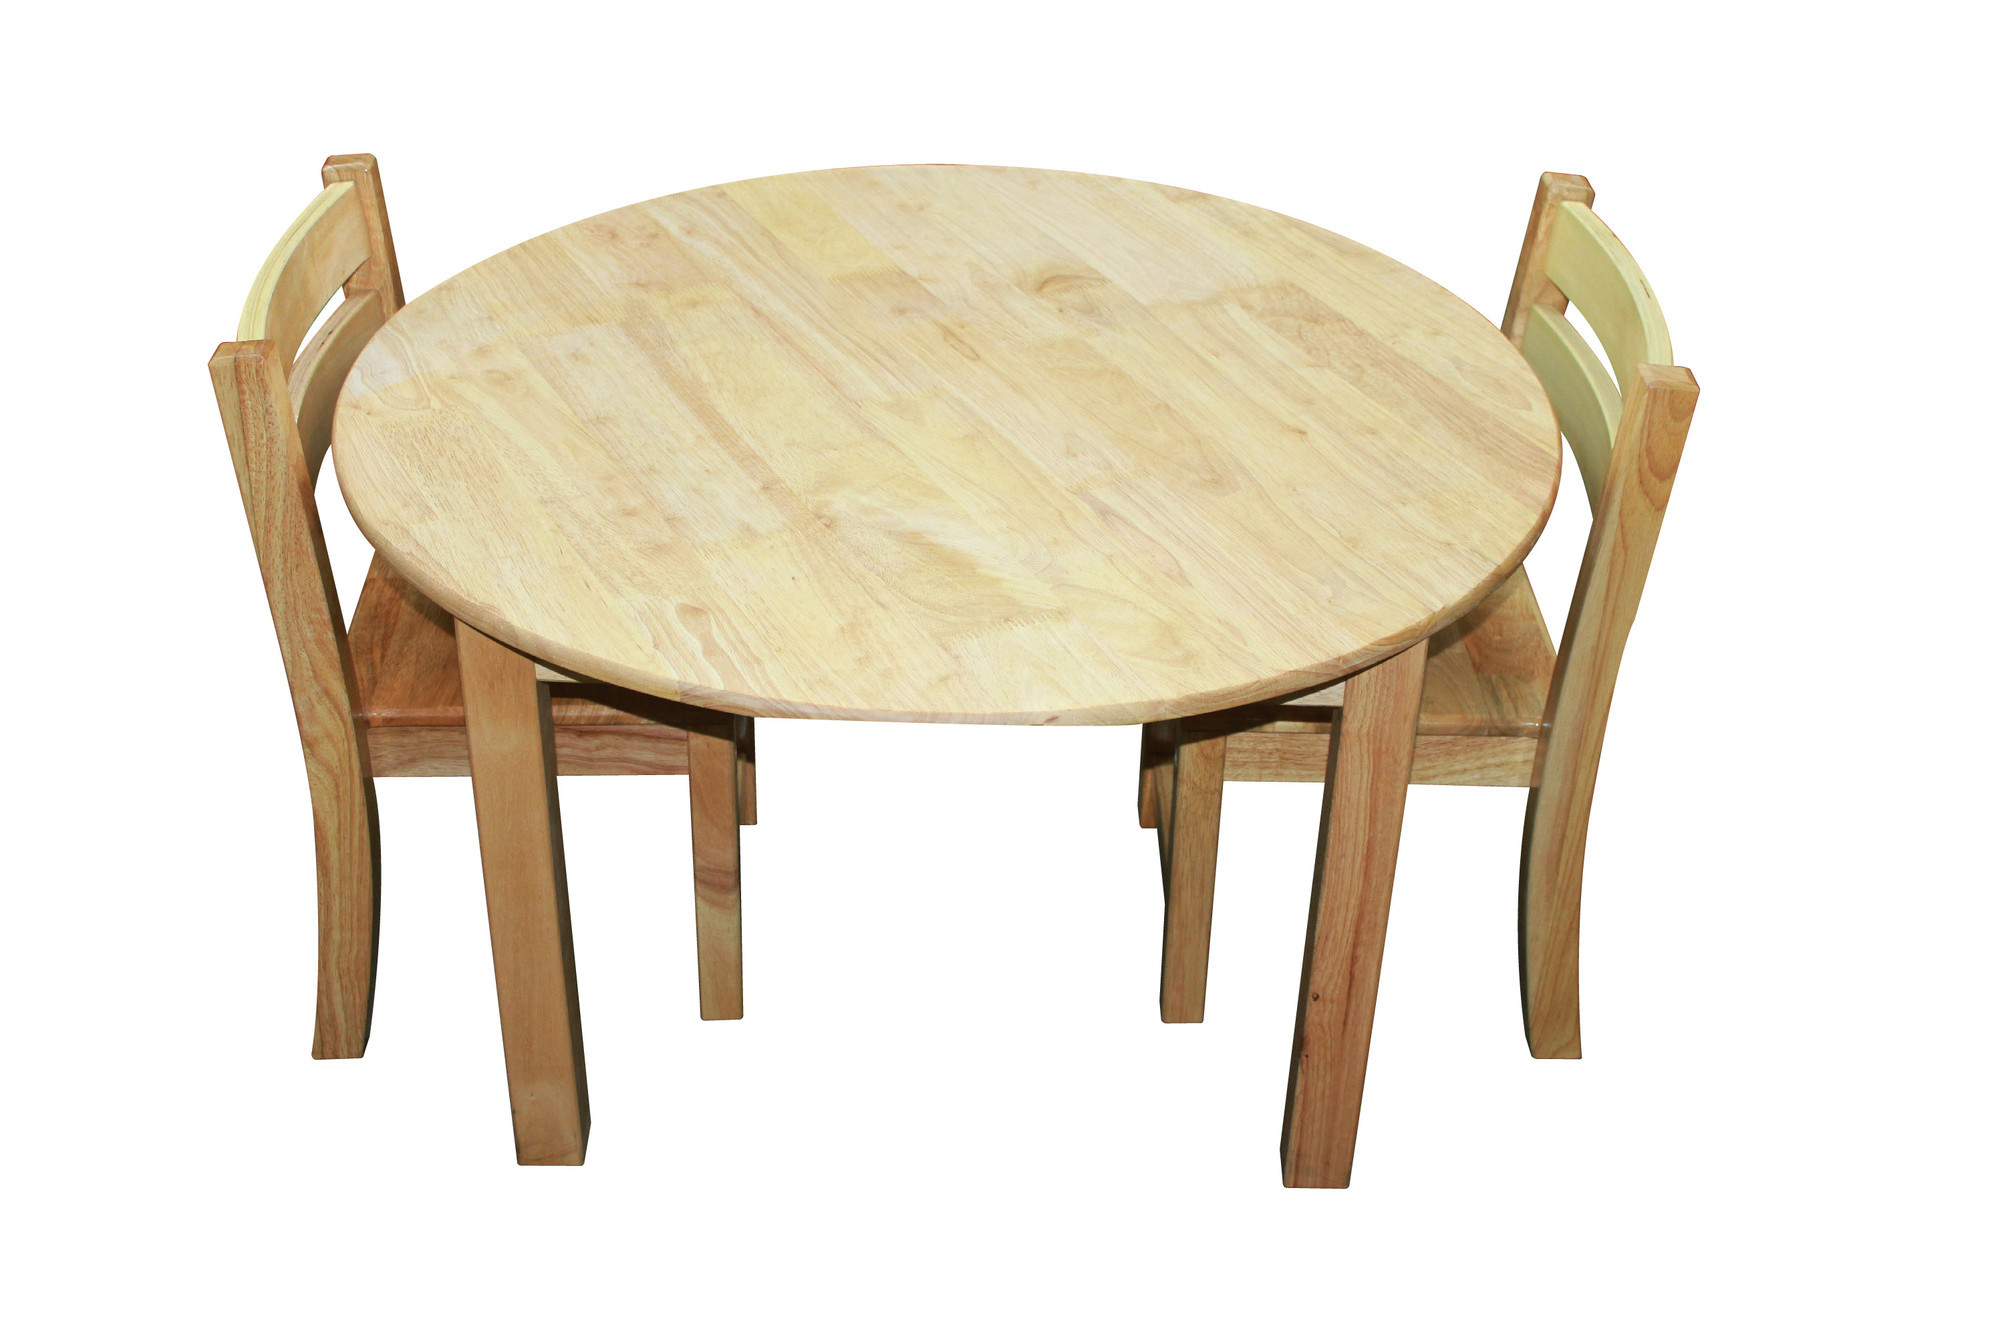 new large round table and 2 stacking chairs sku qtoy1208